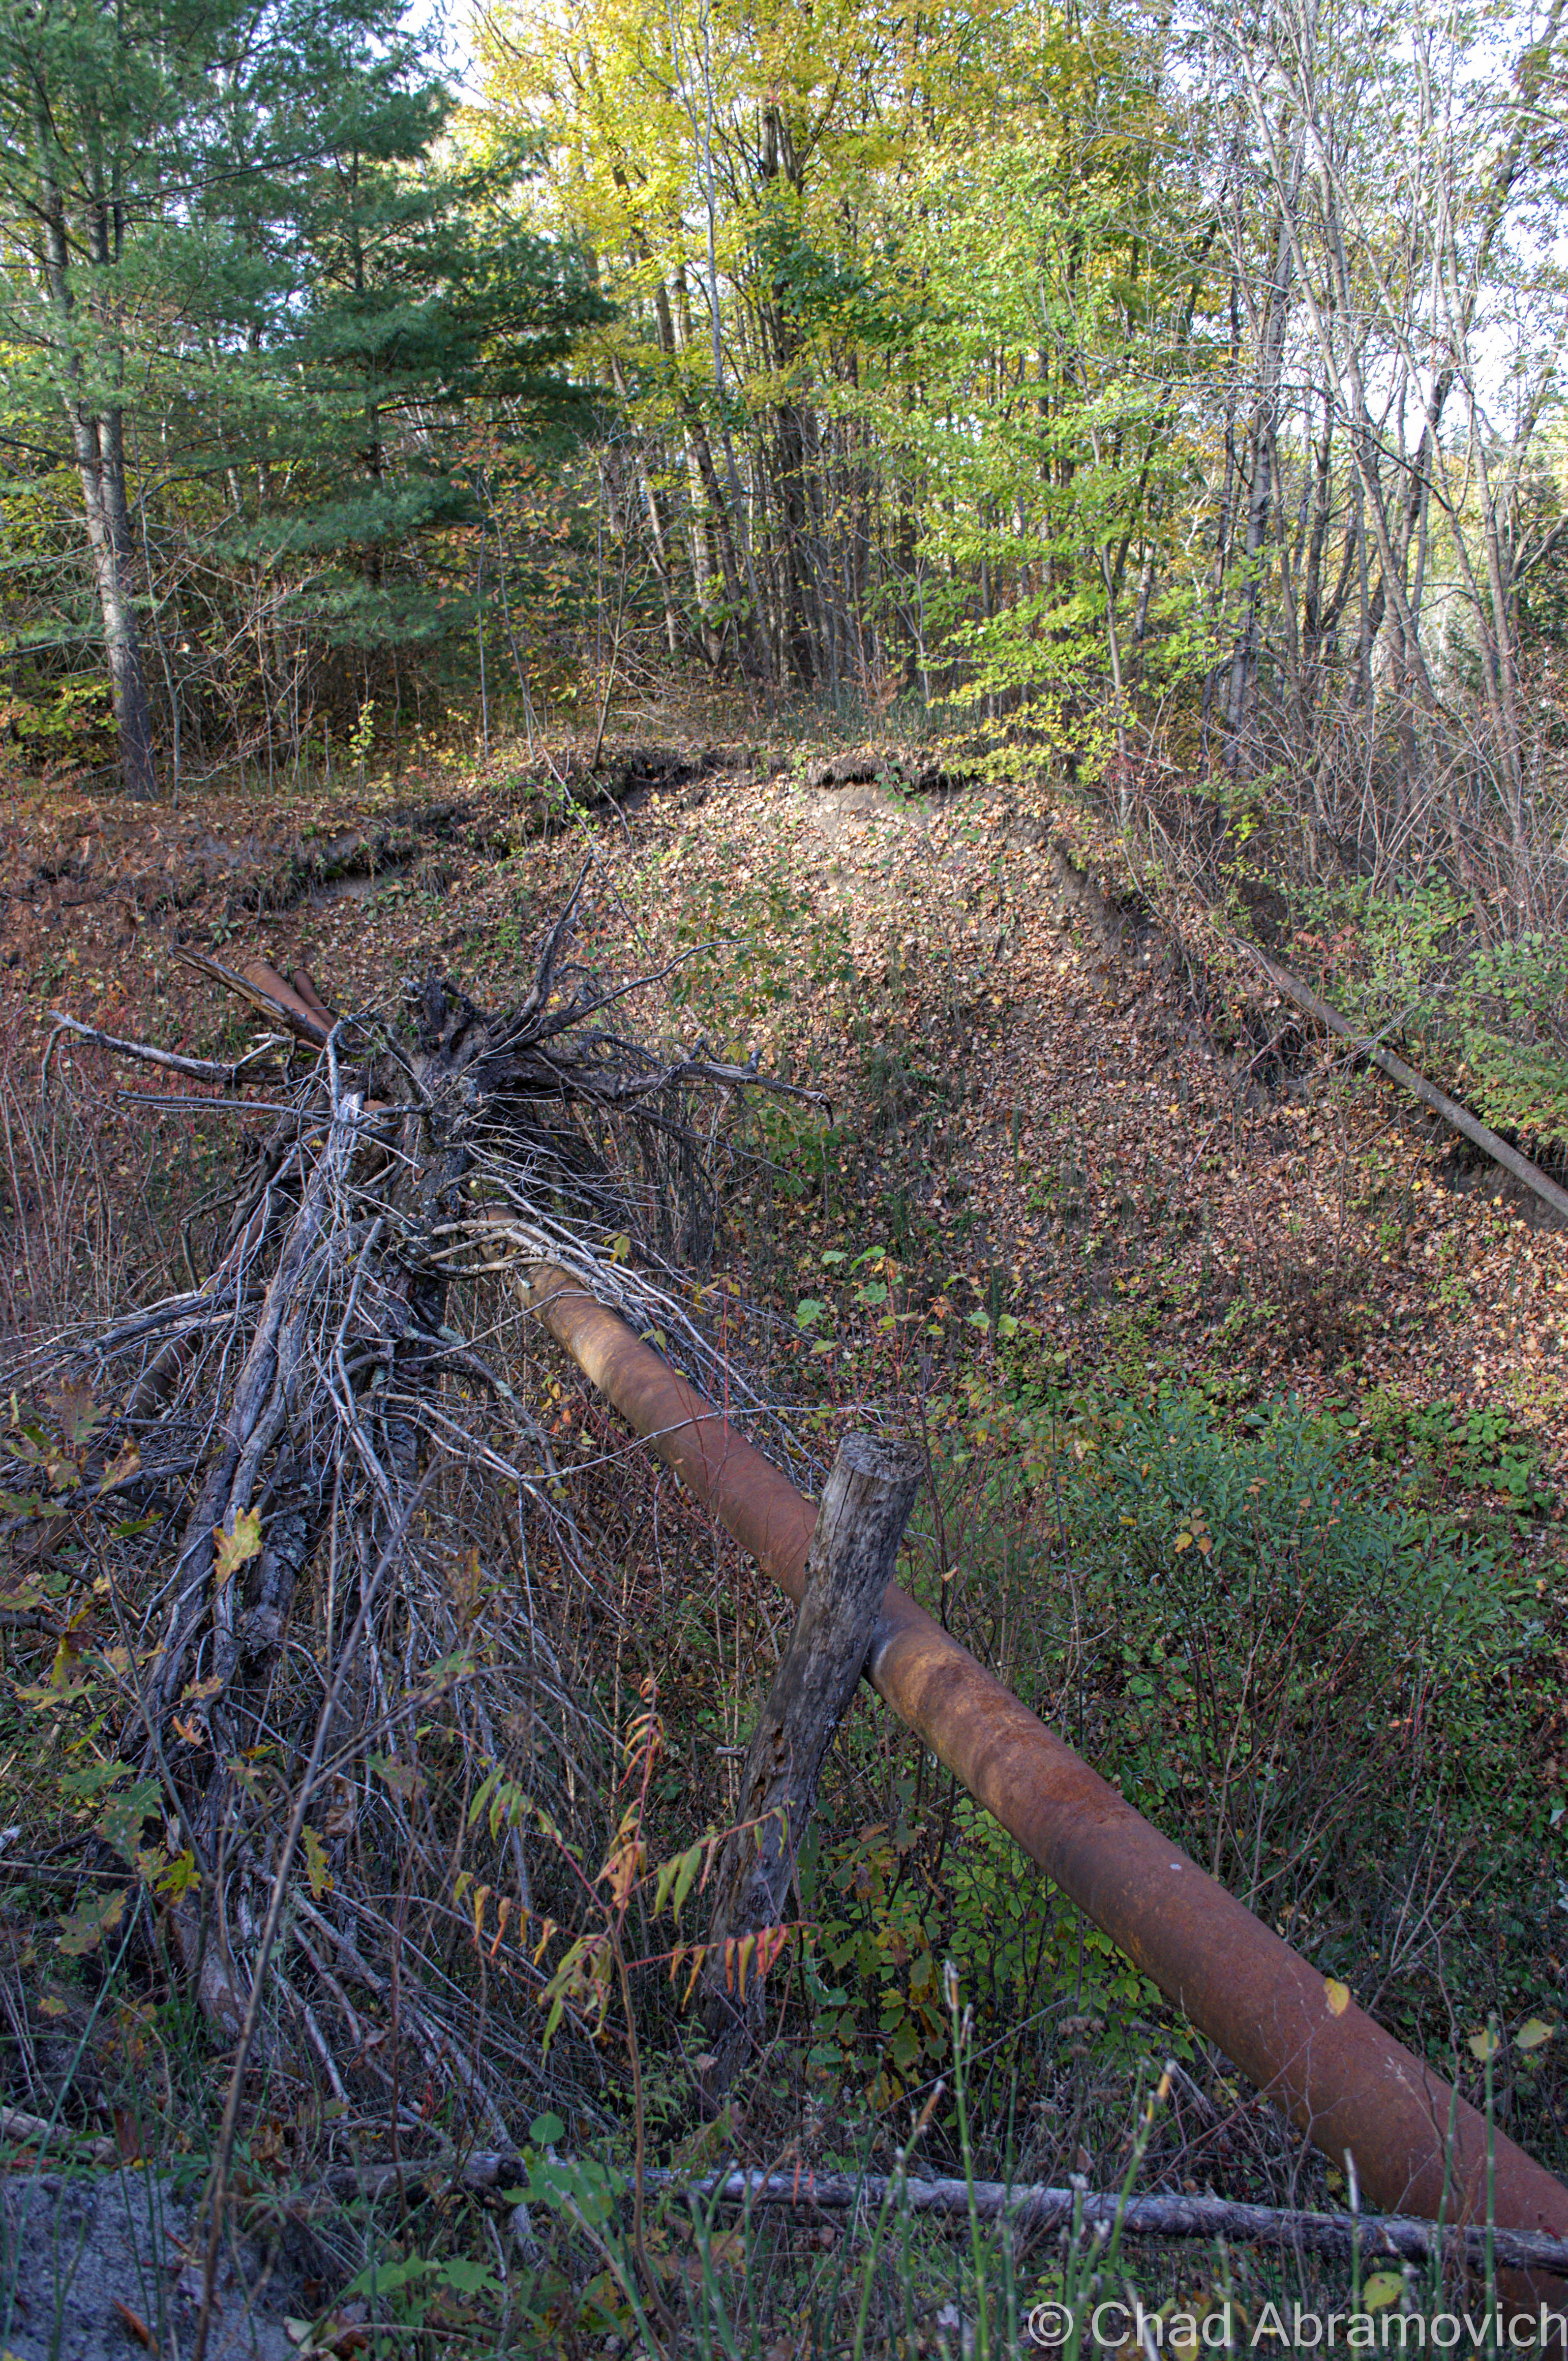 the washout had exposed old rusted pipes that were left exposed and dangling over the gap. climbing up and down the banks was terrible, as the earth kept sliding beneath our feet.